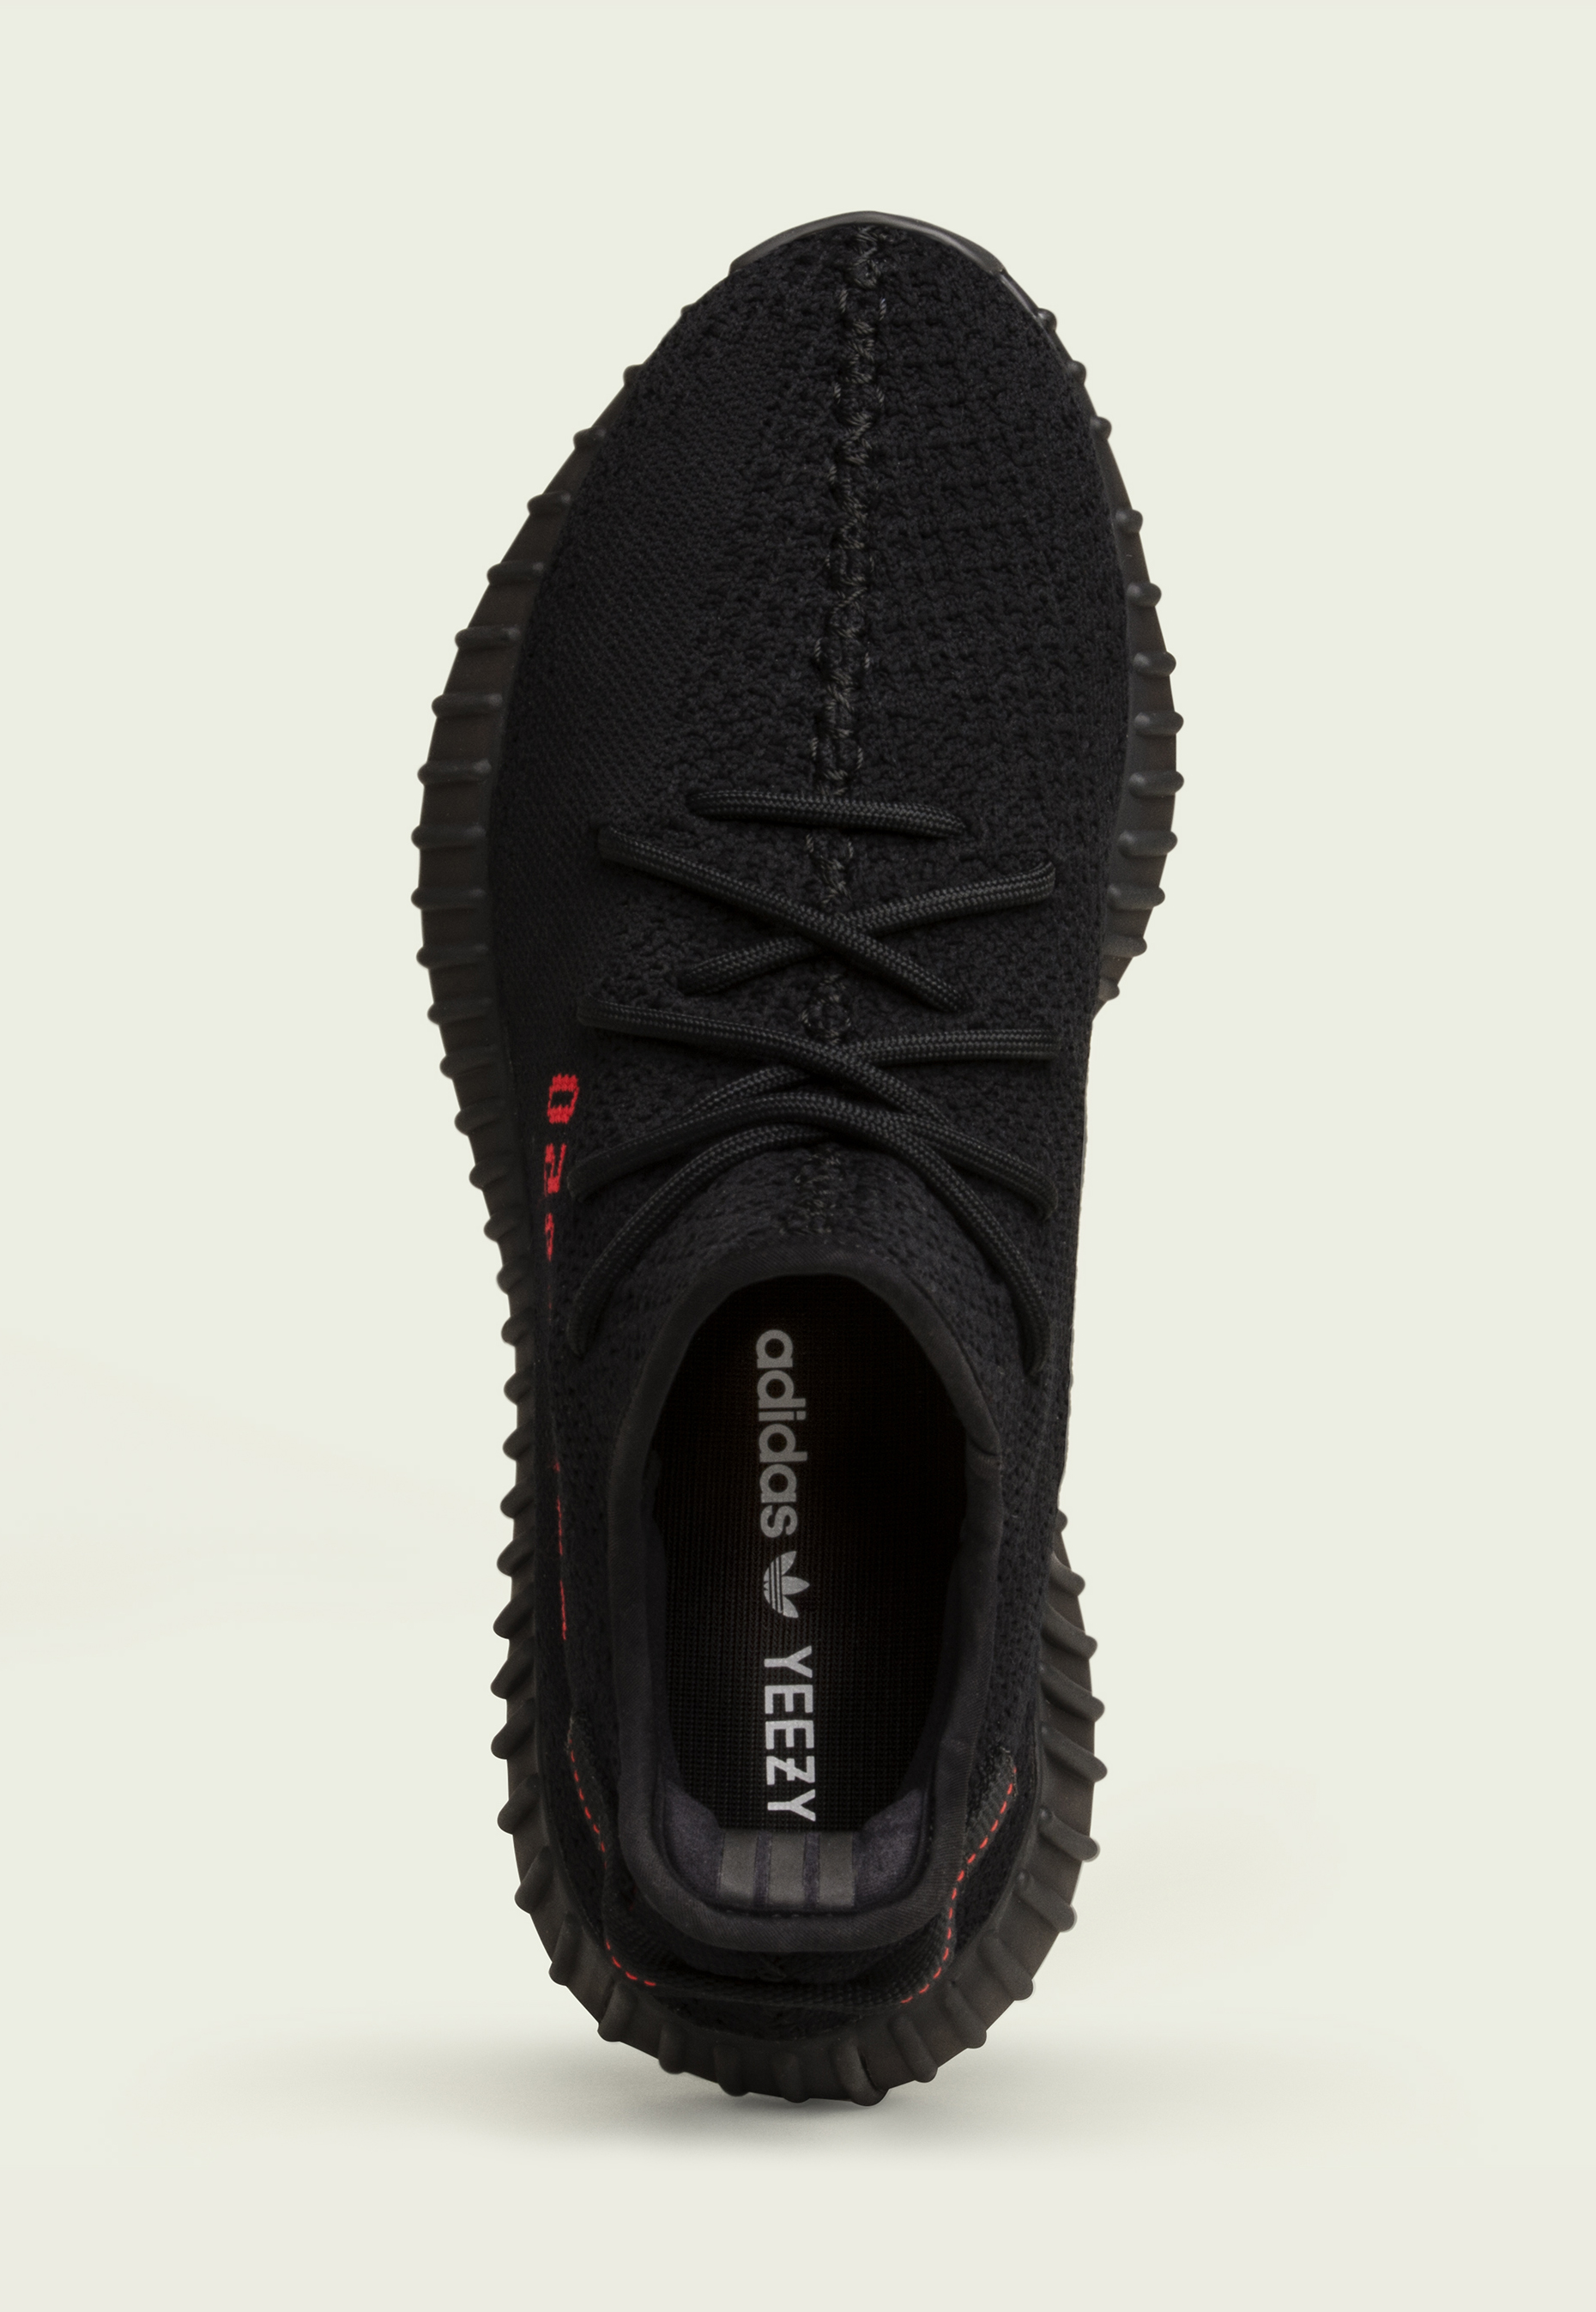 Adidas Originals YEEZY BOOST 350 V 2 Black / Red Official Store List